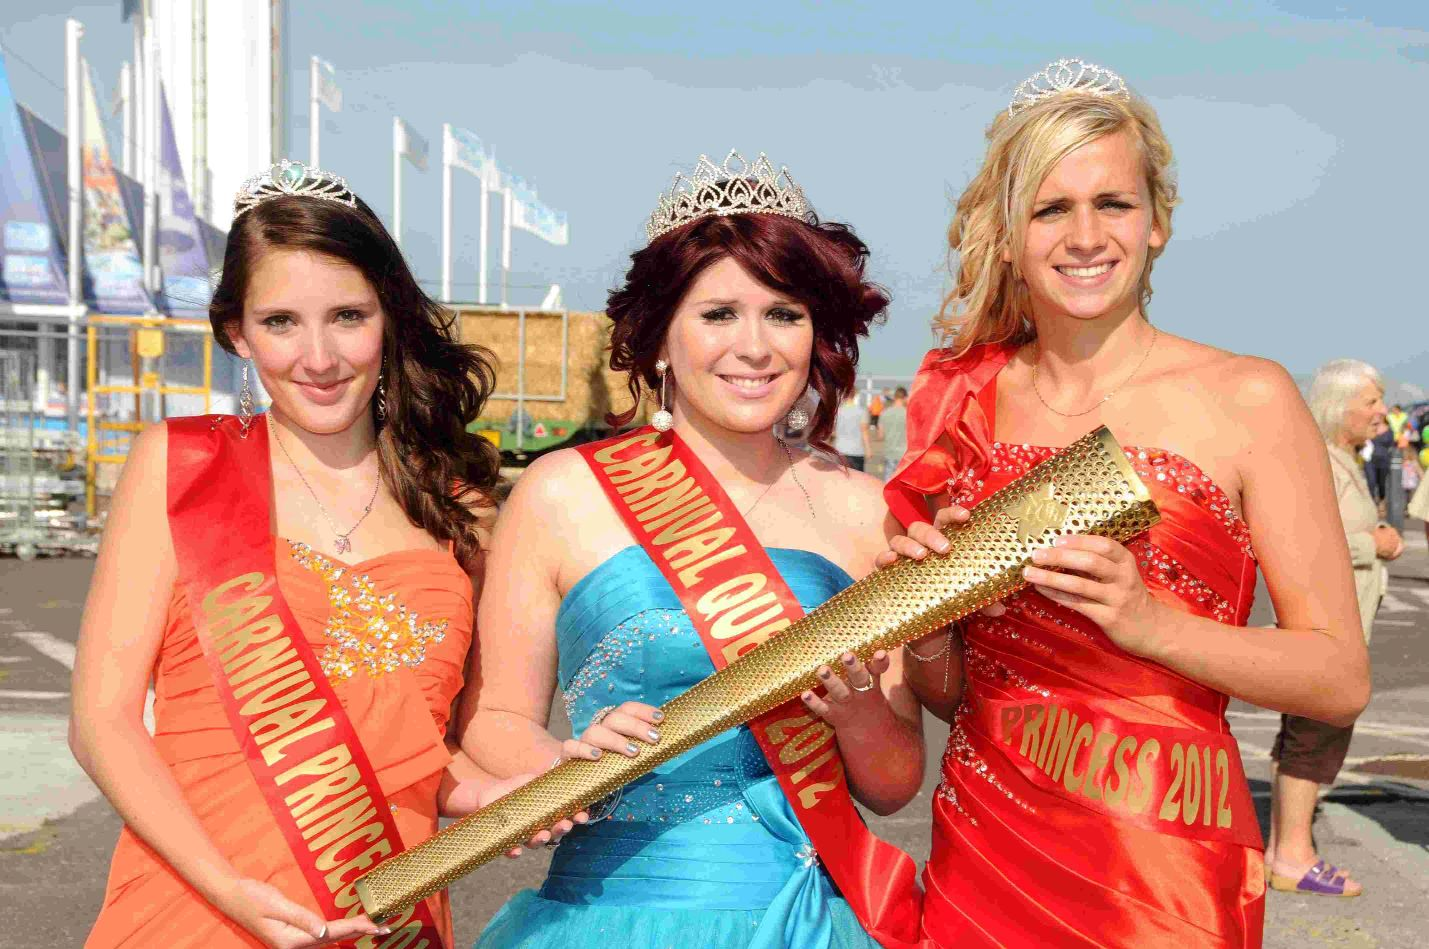 CARRYING THE TORCH: Miss Weymouth organiser Elysia Munday as the 2012 carnival queen with attendants Hannah Derrick and Gina Hartley